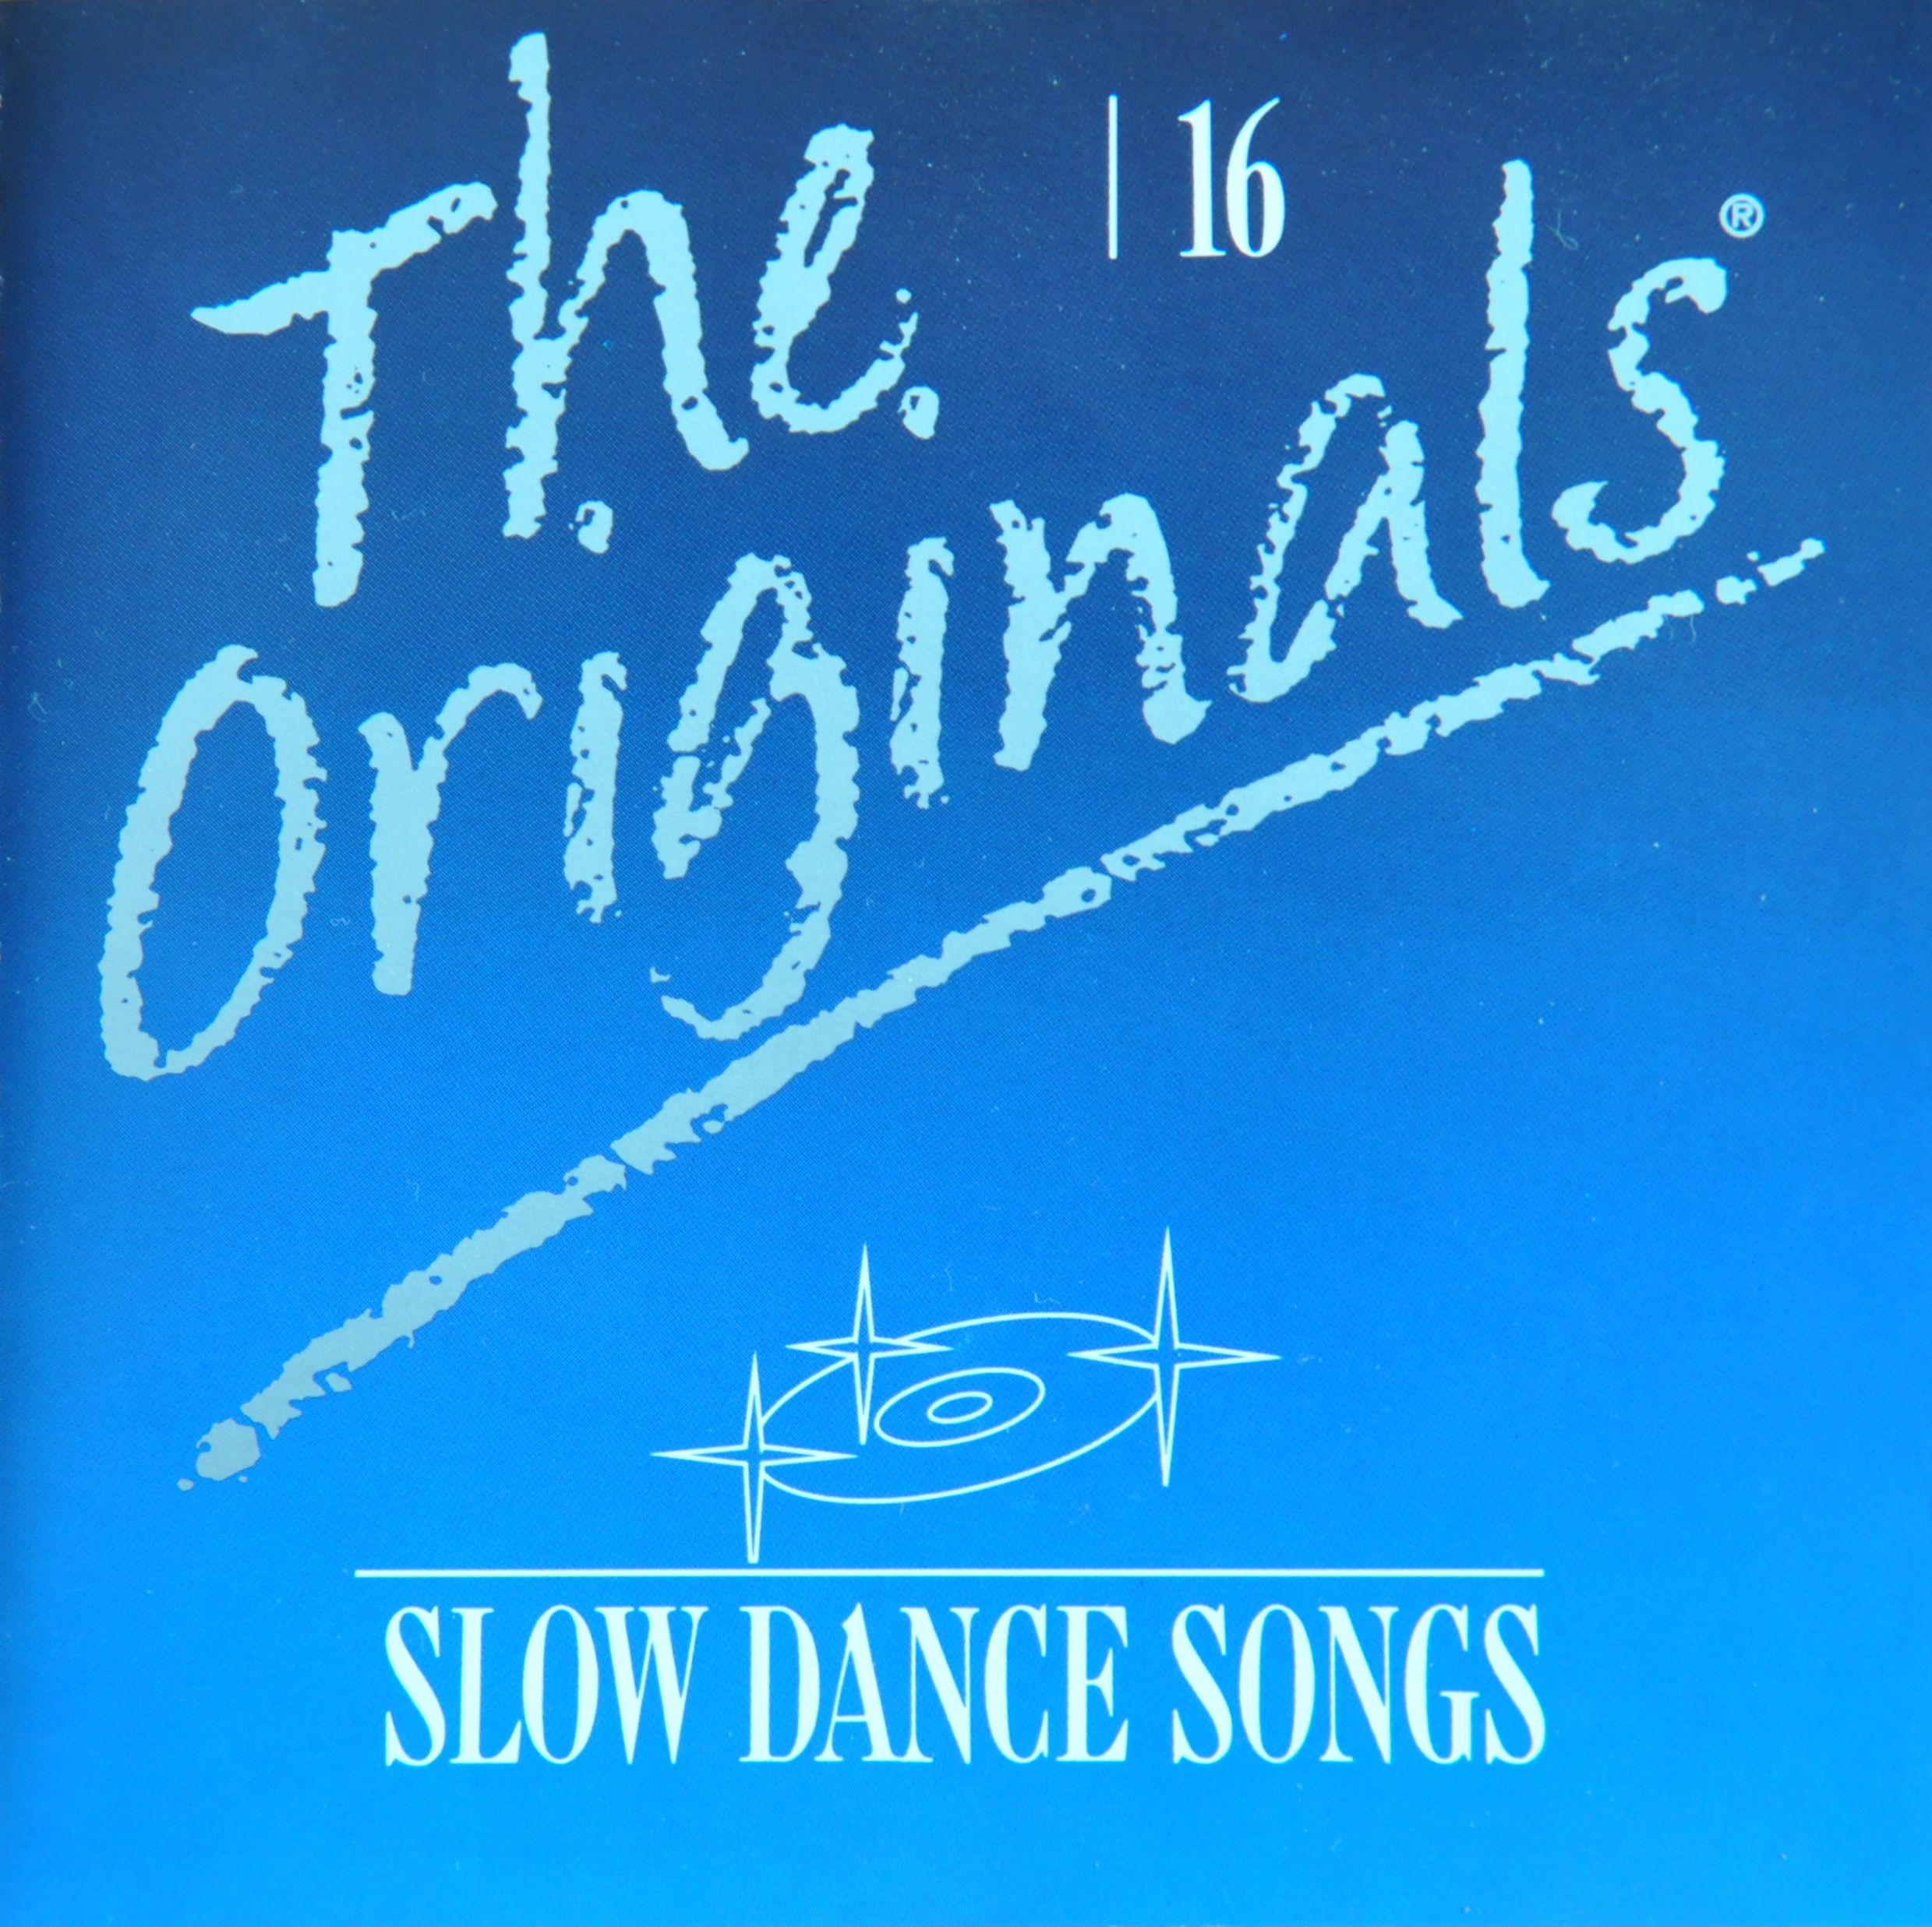 jaquettes2/The-Originals_16_Slow-Dance-Songs.jpg